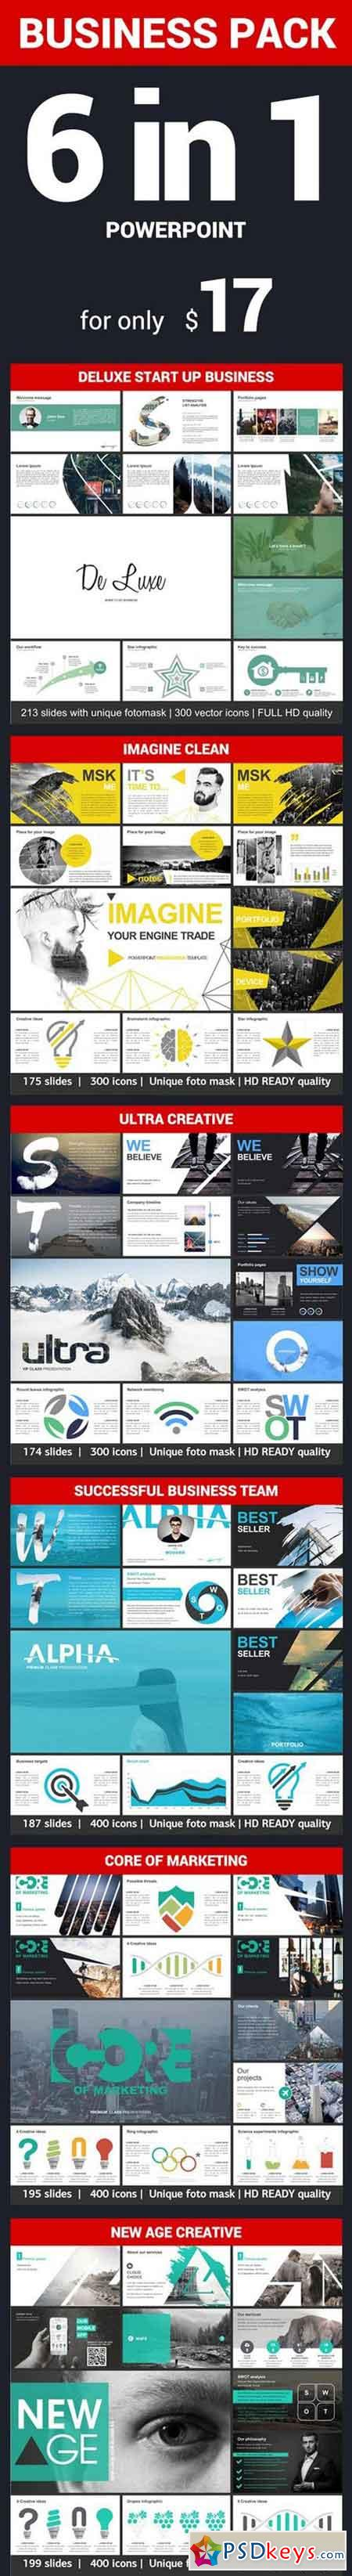 Business Pack Powerpoint 19301035